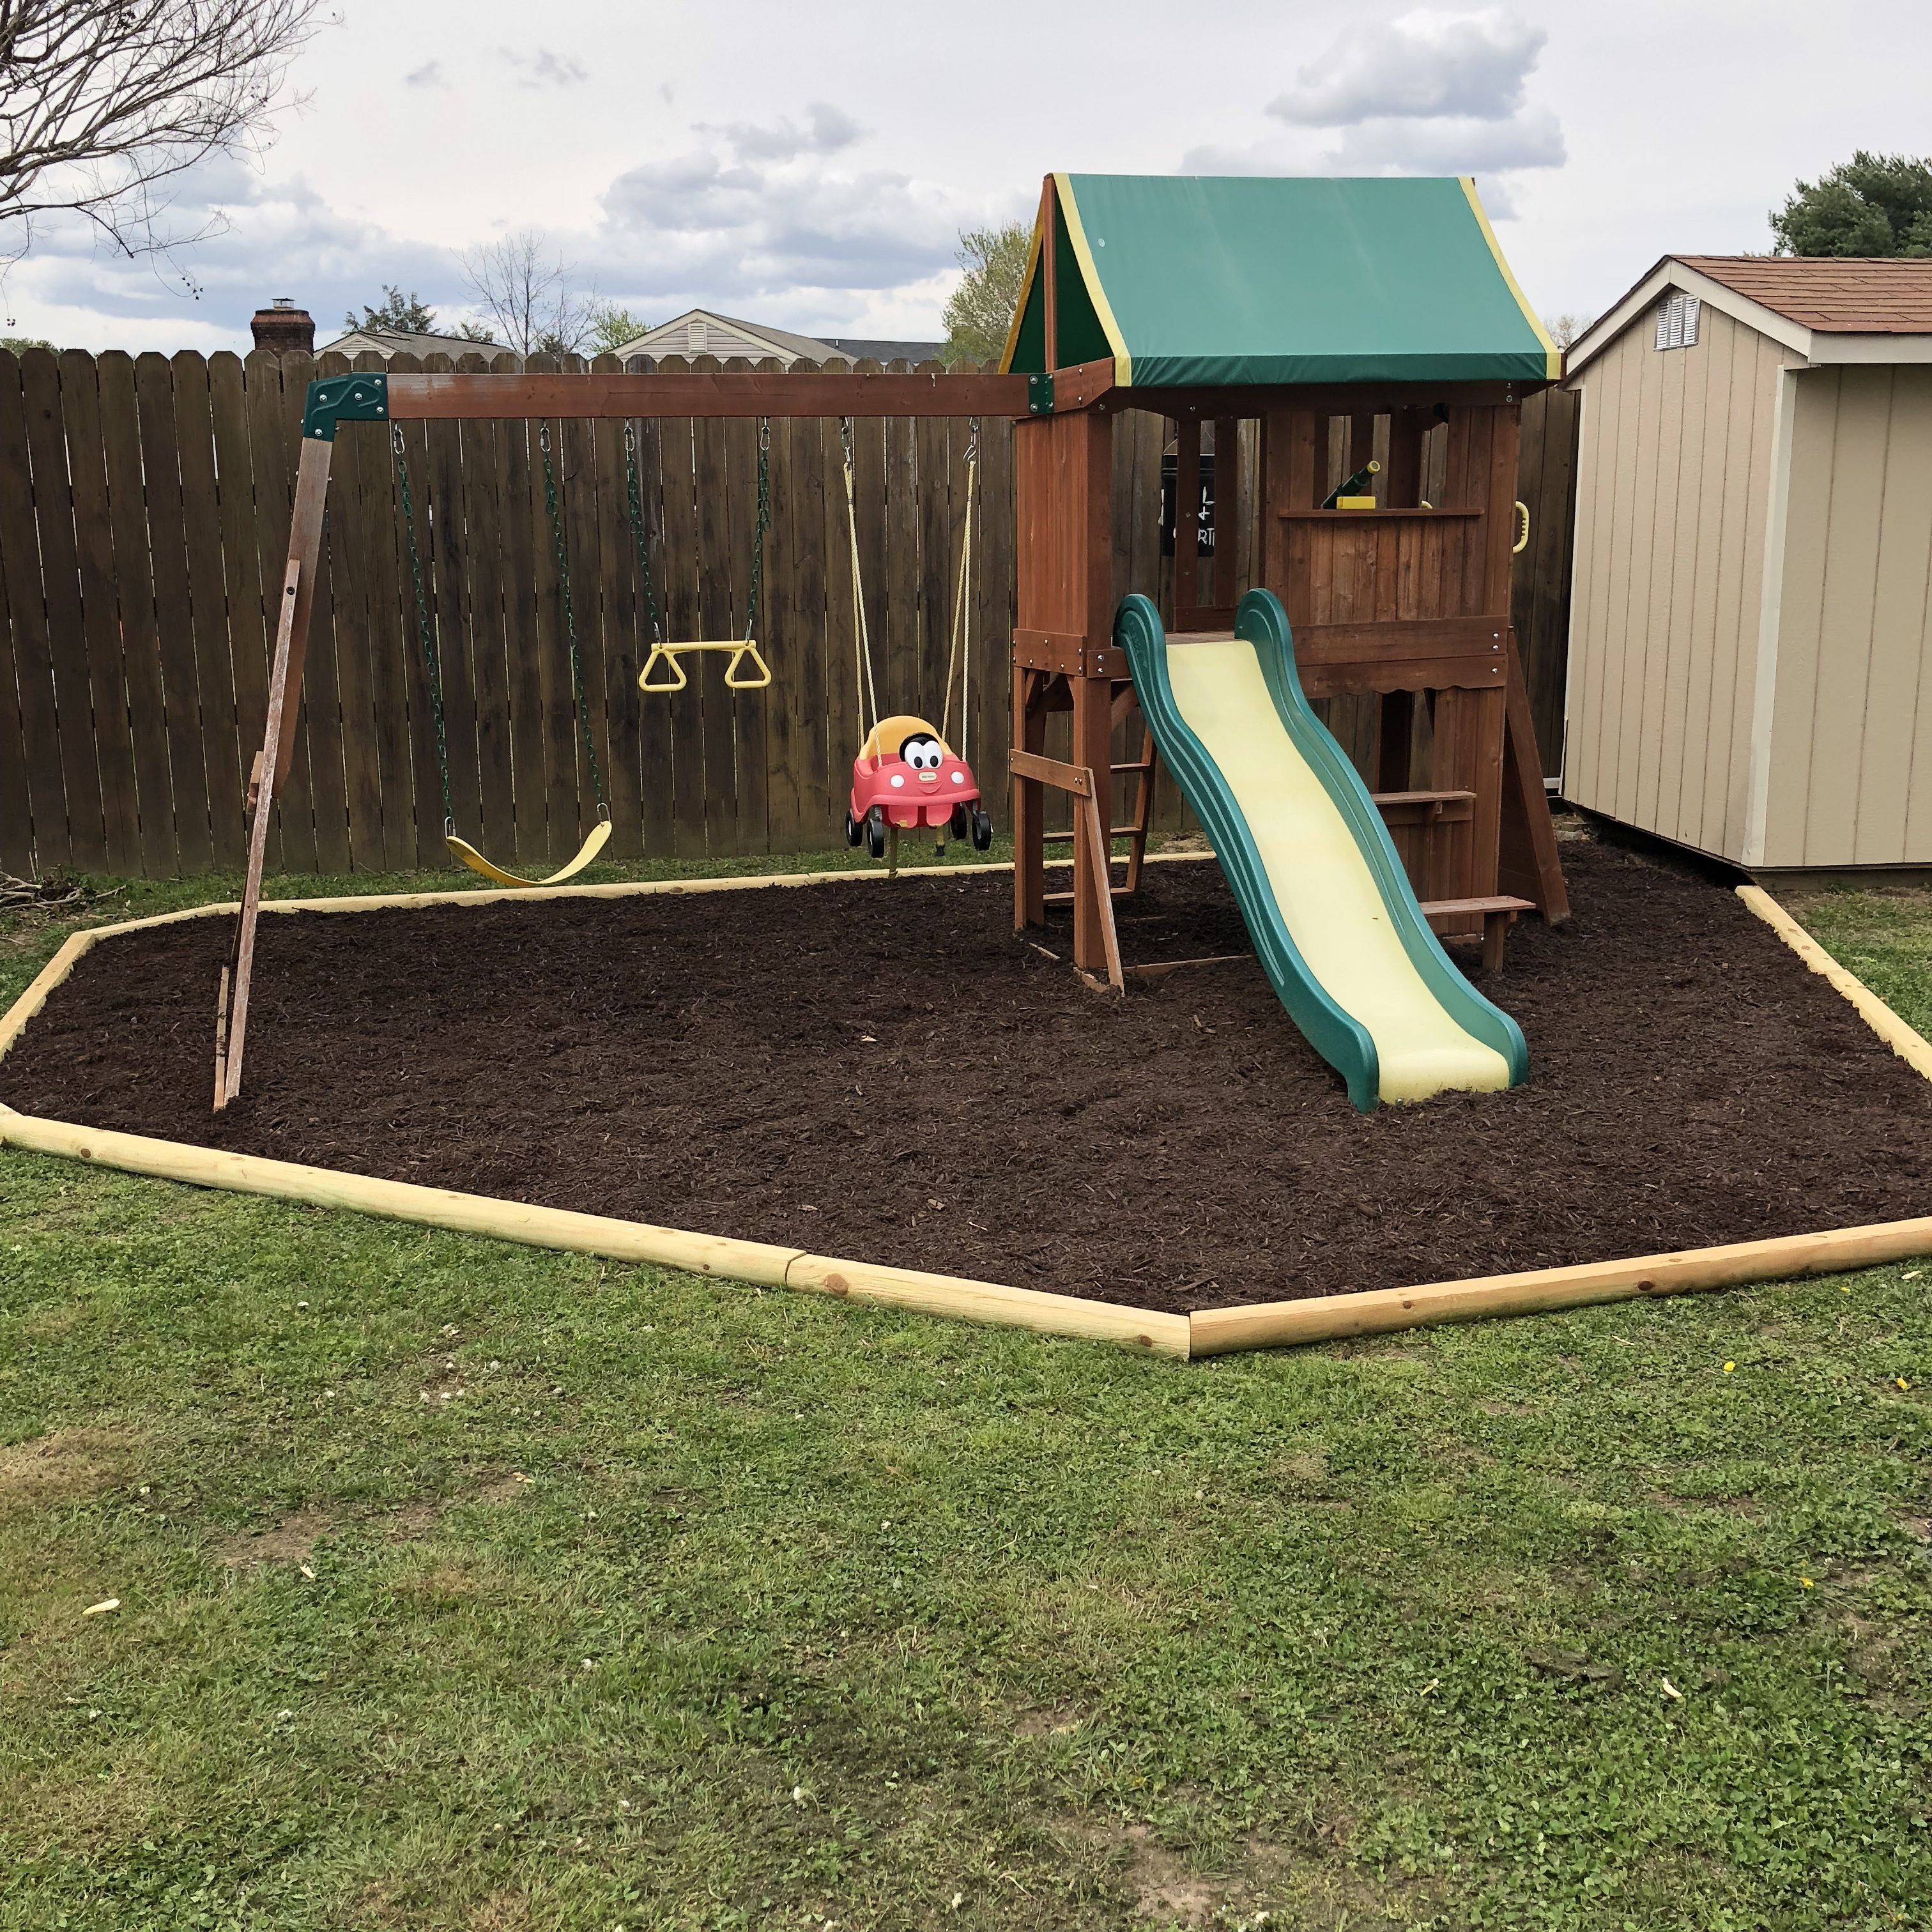 Play Area Landscape Nikki Play Area Landscape My Hubby Did An Amazing Job With Our Kids Swing Set In 2020 Play Area Backyard Kids Swing Backyard Playset